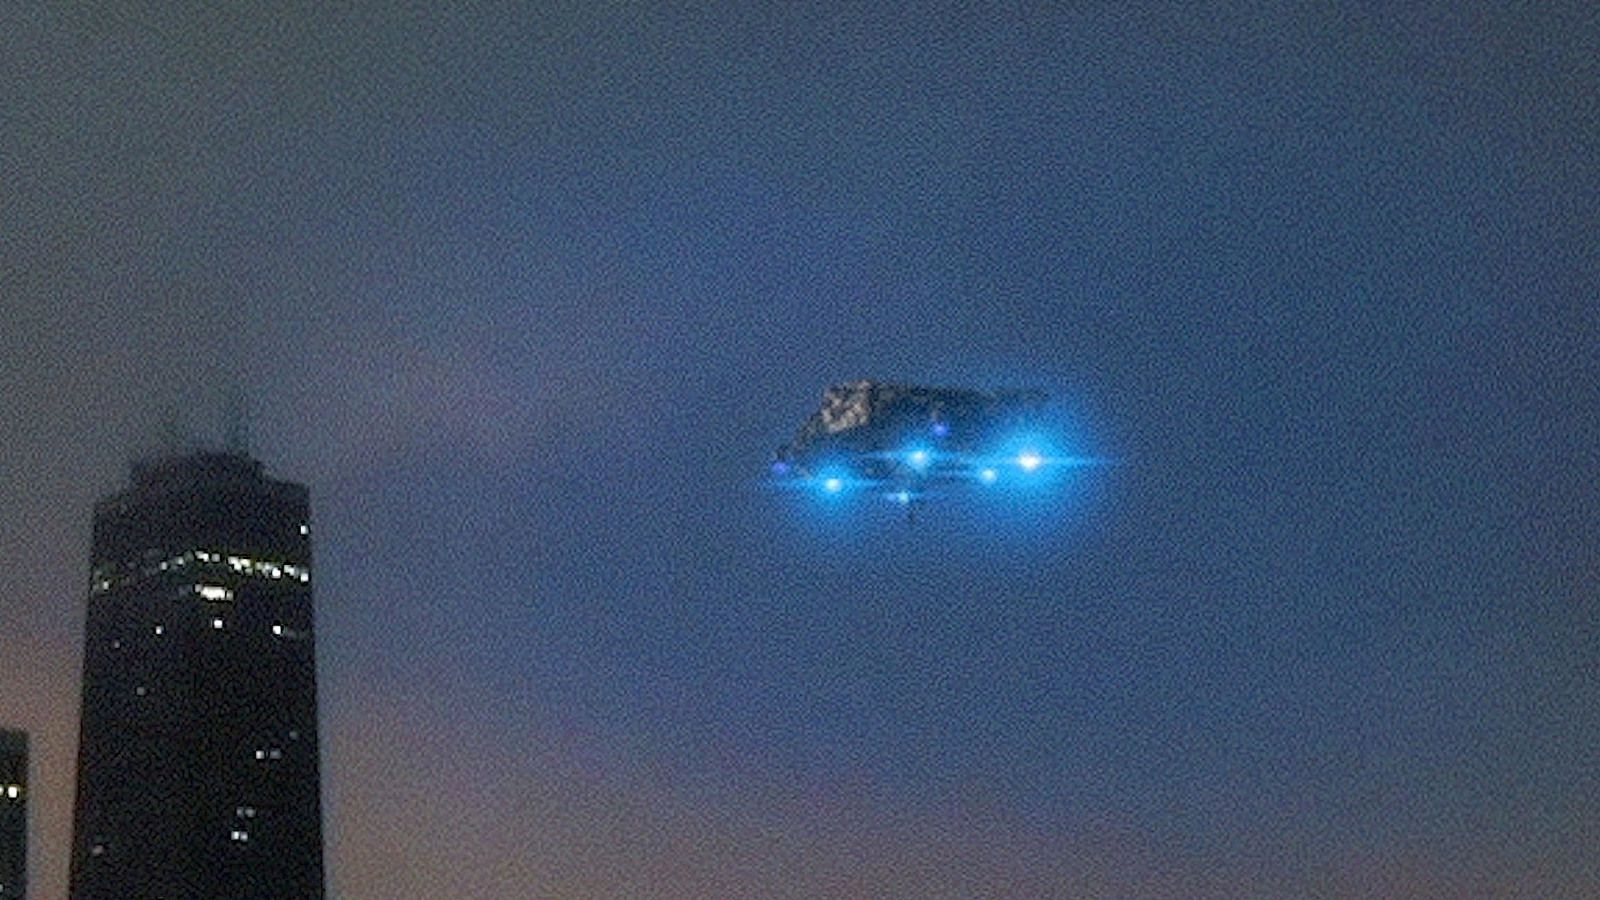 👽 UFO Spotted in the sky of New York by Night